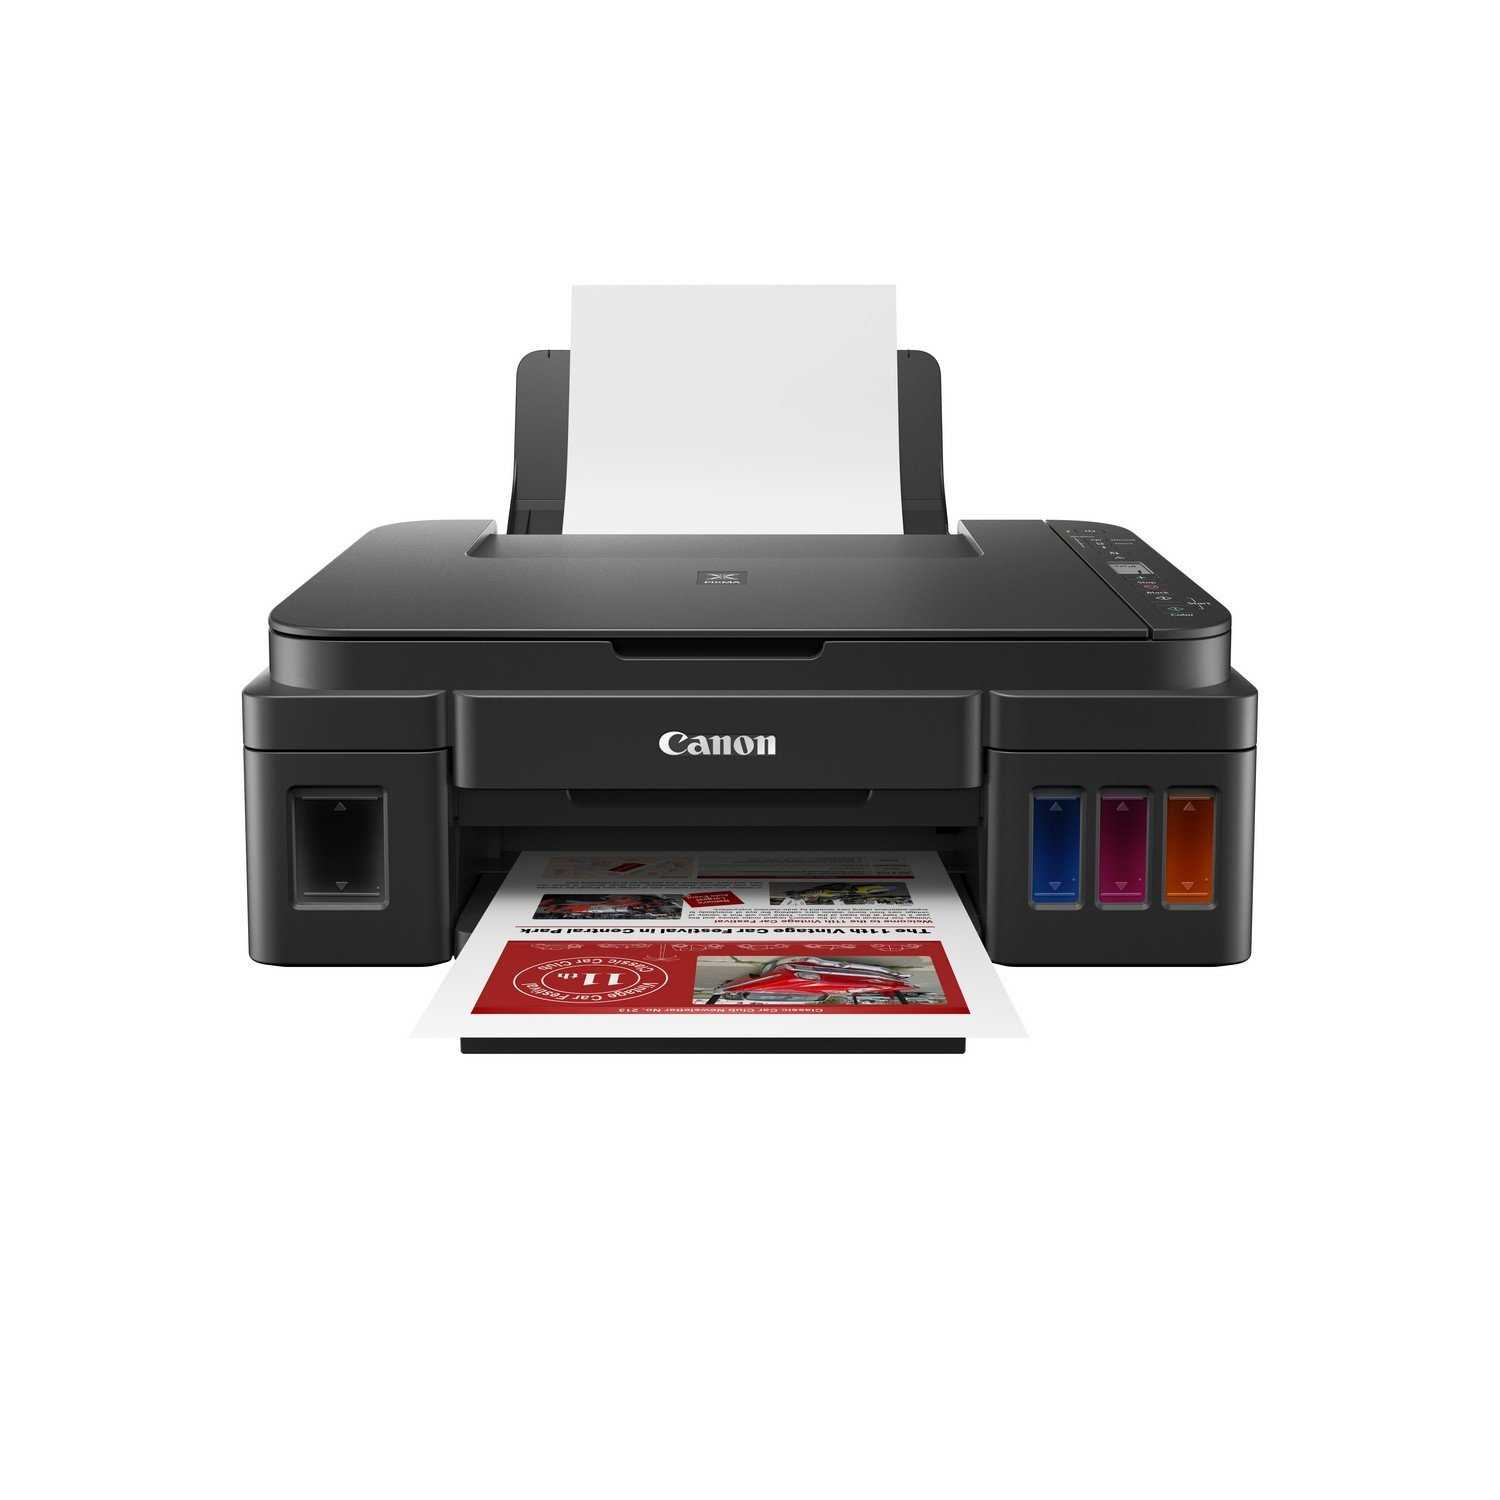 Canon Pixma G3010 Inkjet Multifunction Printer